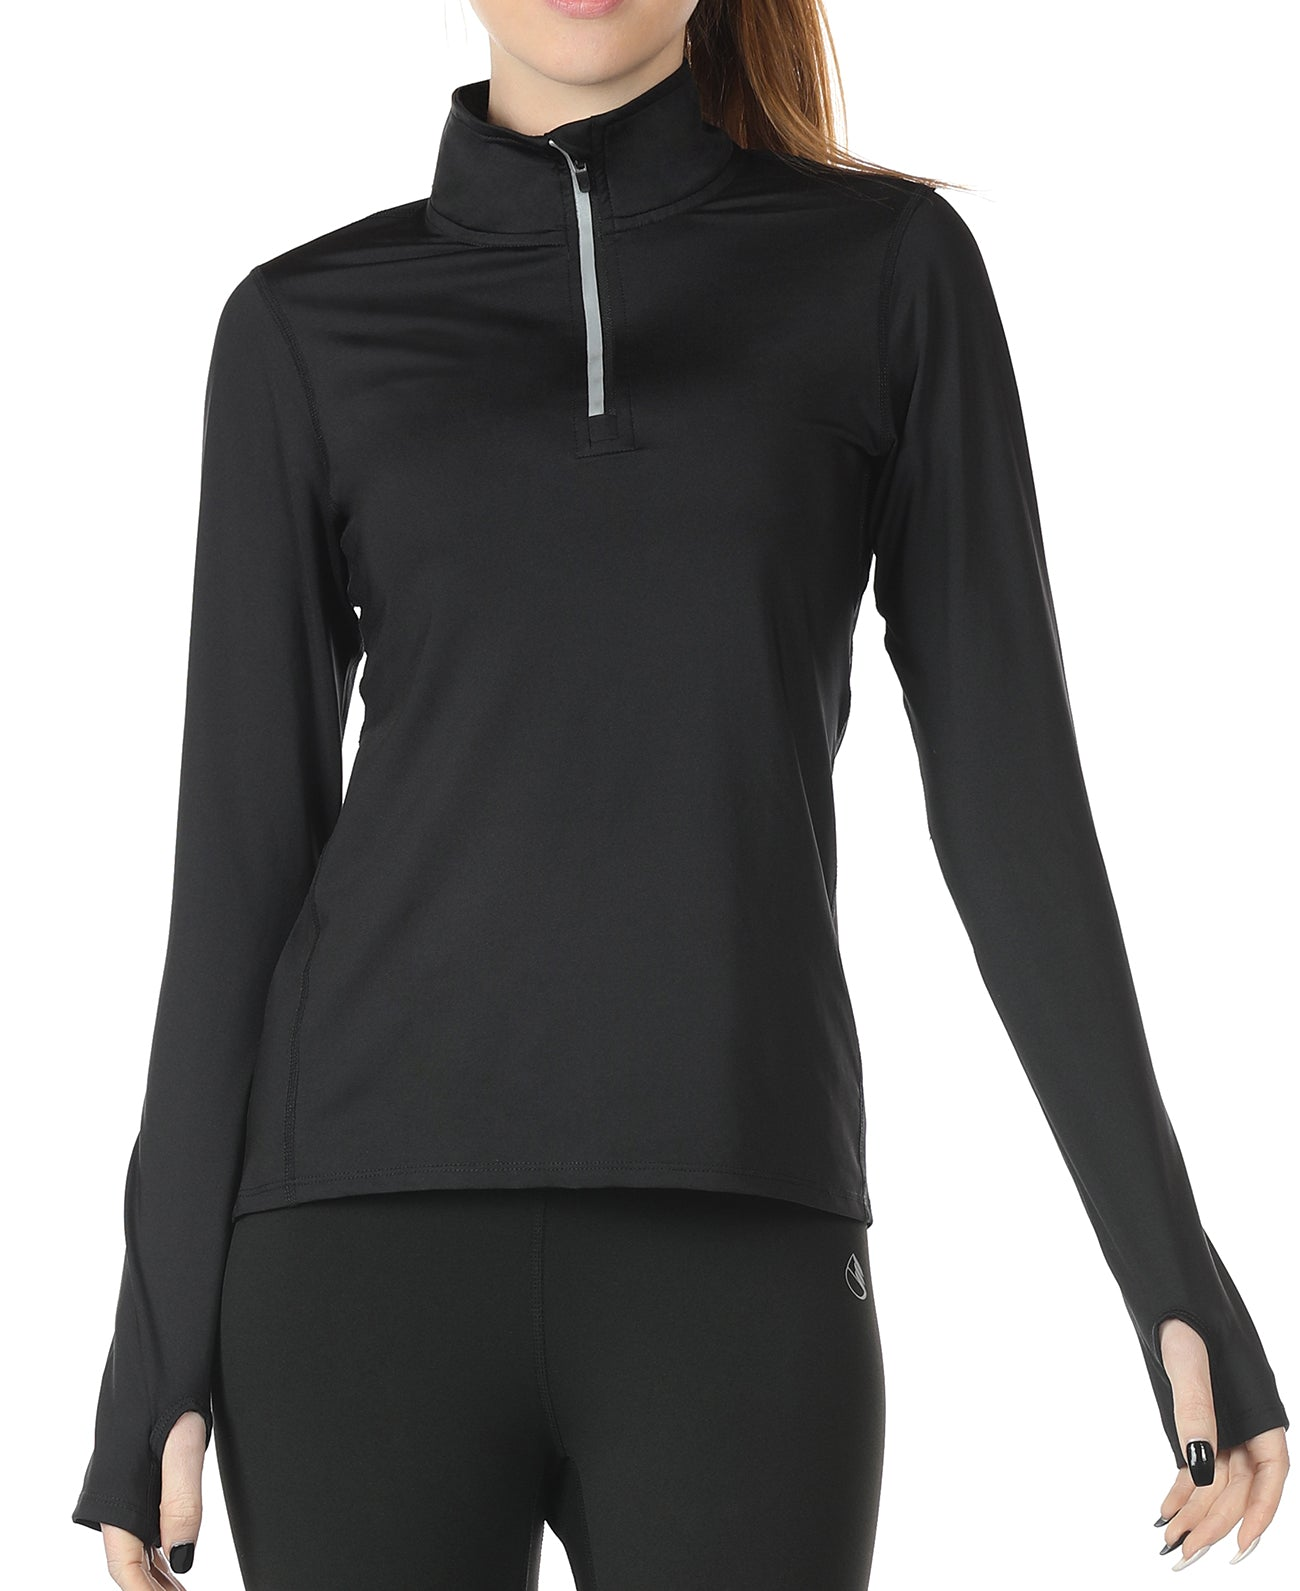 icyzone Workout Long Sleeve Shirts for Women - Yoga Running Tops Quarter Zip Pullover Exercise T-Shirts with Thumb Holes